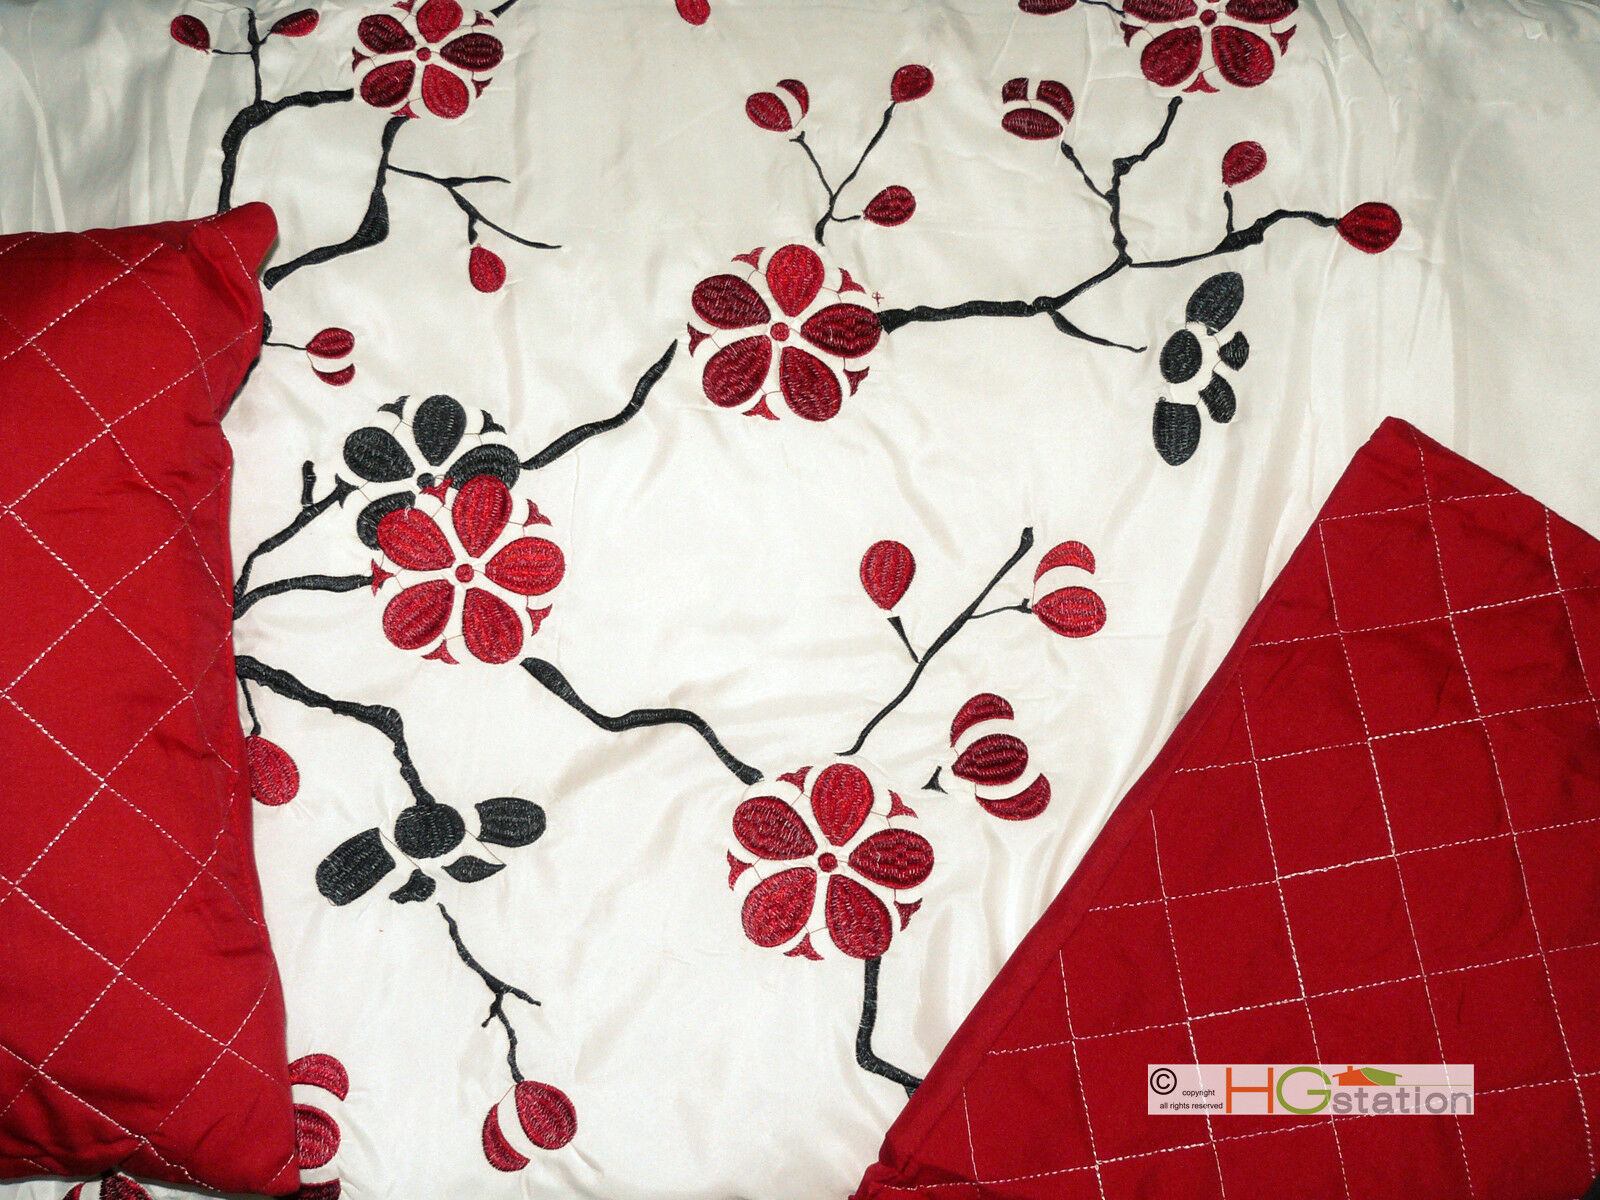 7P Quilted Peach Plum Blossom Tree Embroidery Comforter Set Red Off-White Sakura